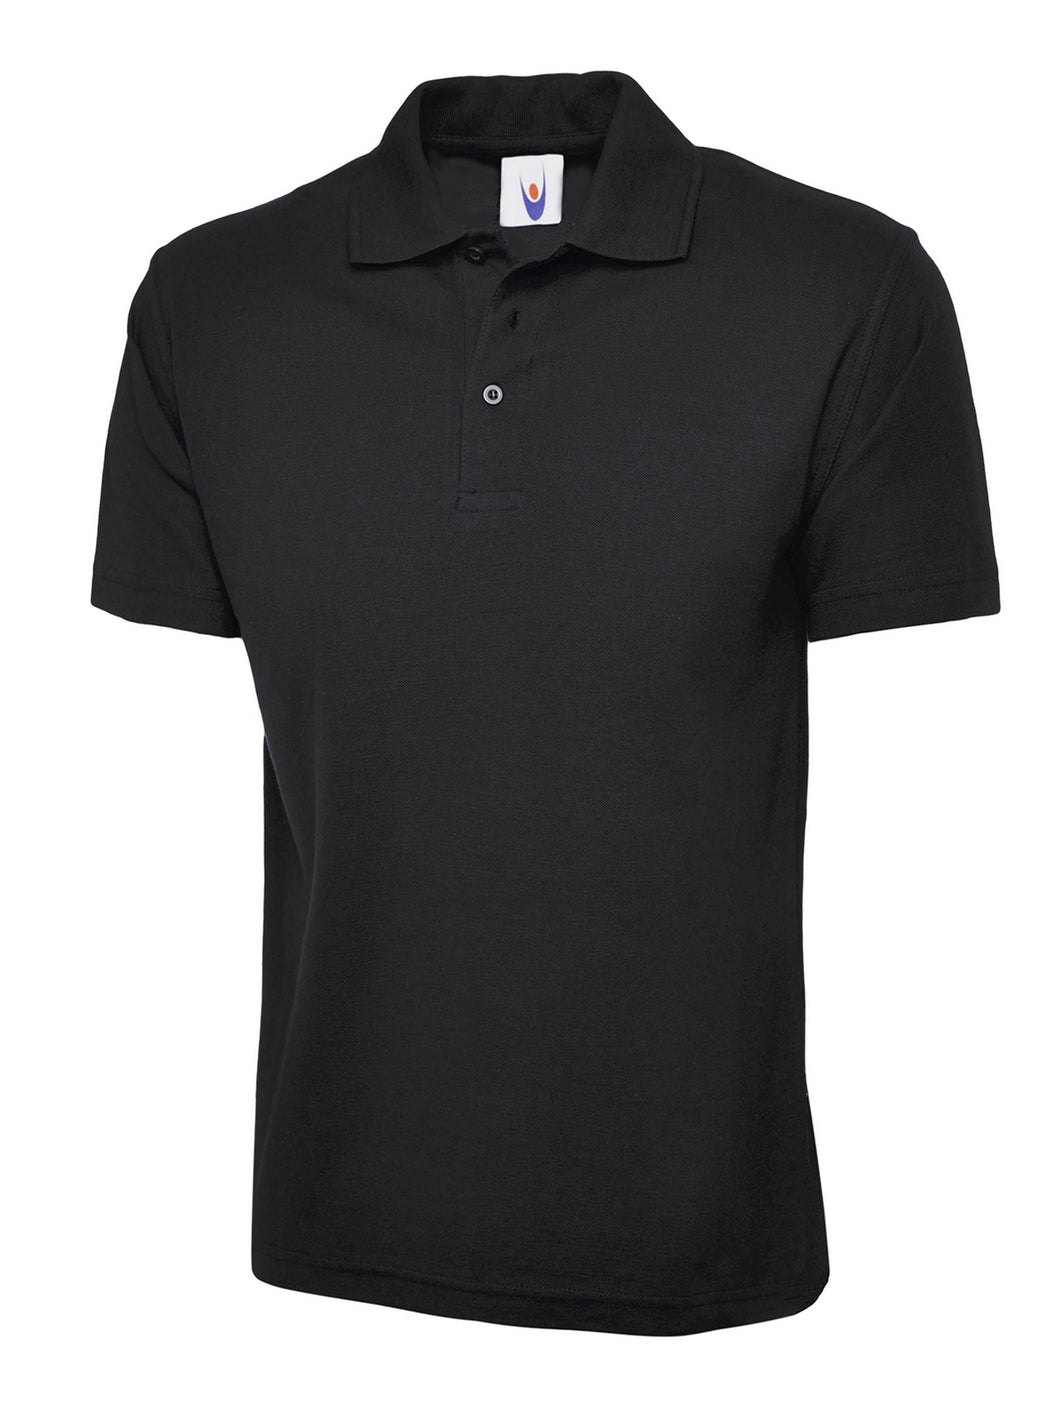 Uneek Premium Polo UC102 Gazelle Sports UK XS Black Yes